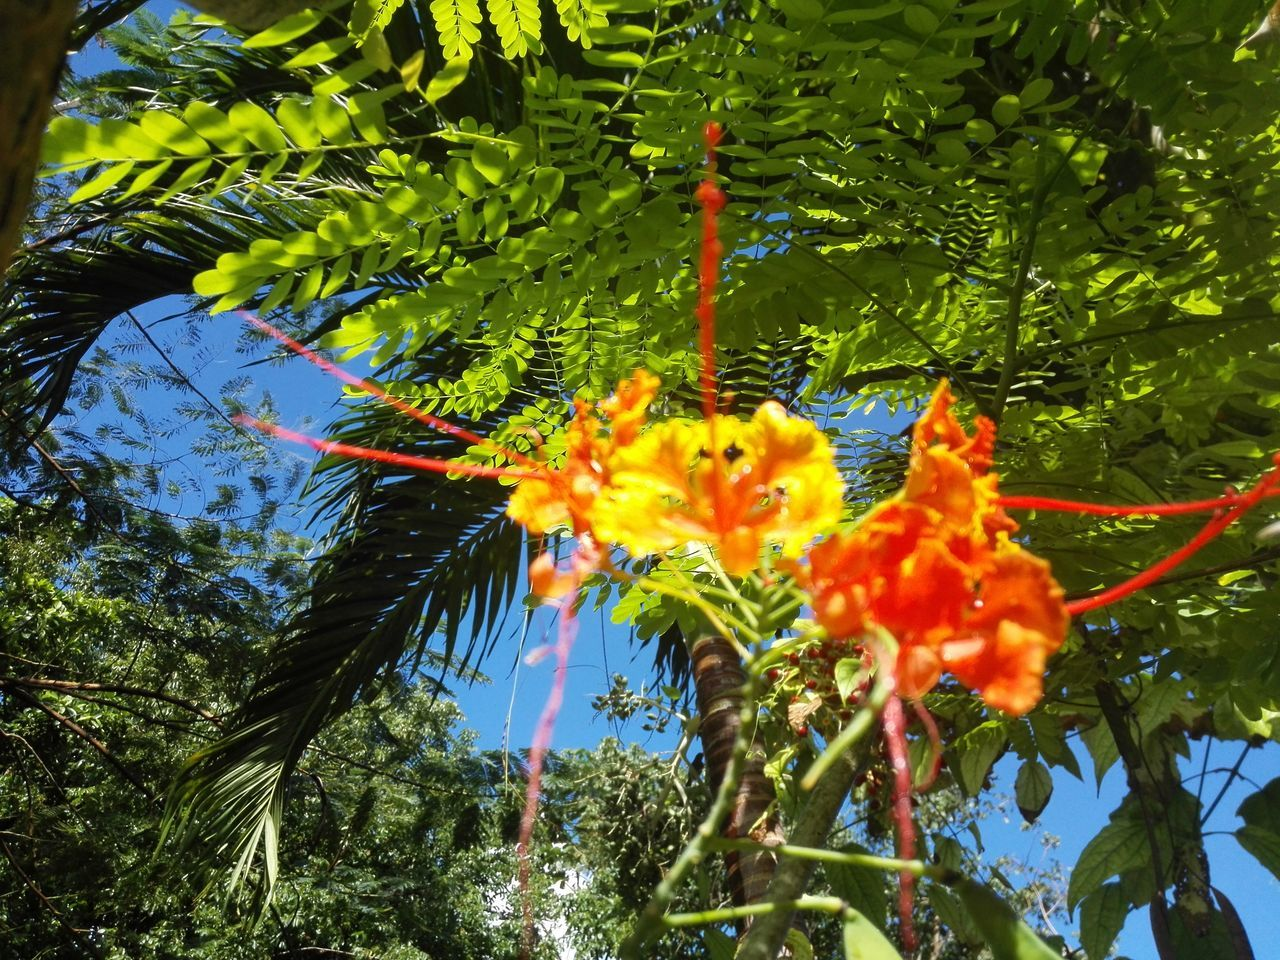 Flower Nature Beauty In Nature Plant Fragility Growth Tree No People Green Color Day Leaf Outdoors Blooming Freshness Close-up Sky Water Flower Head Soulfultography Eyemgallery Eyem Best Shot - My World Spiritualawakening